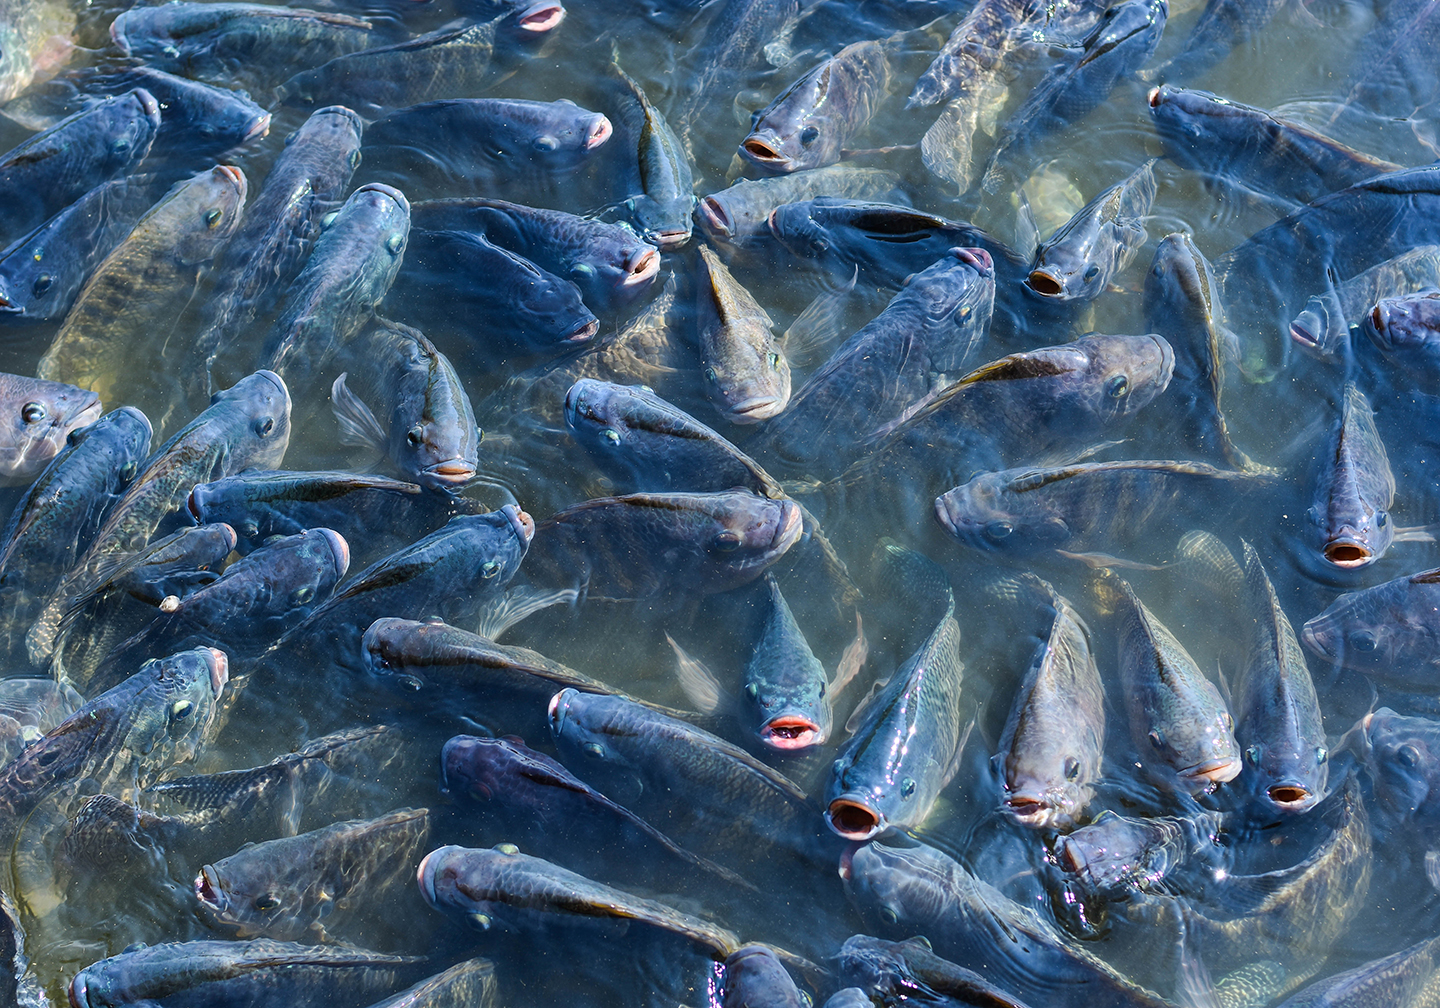 Lots of Tilapia fish swarming on the surface.